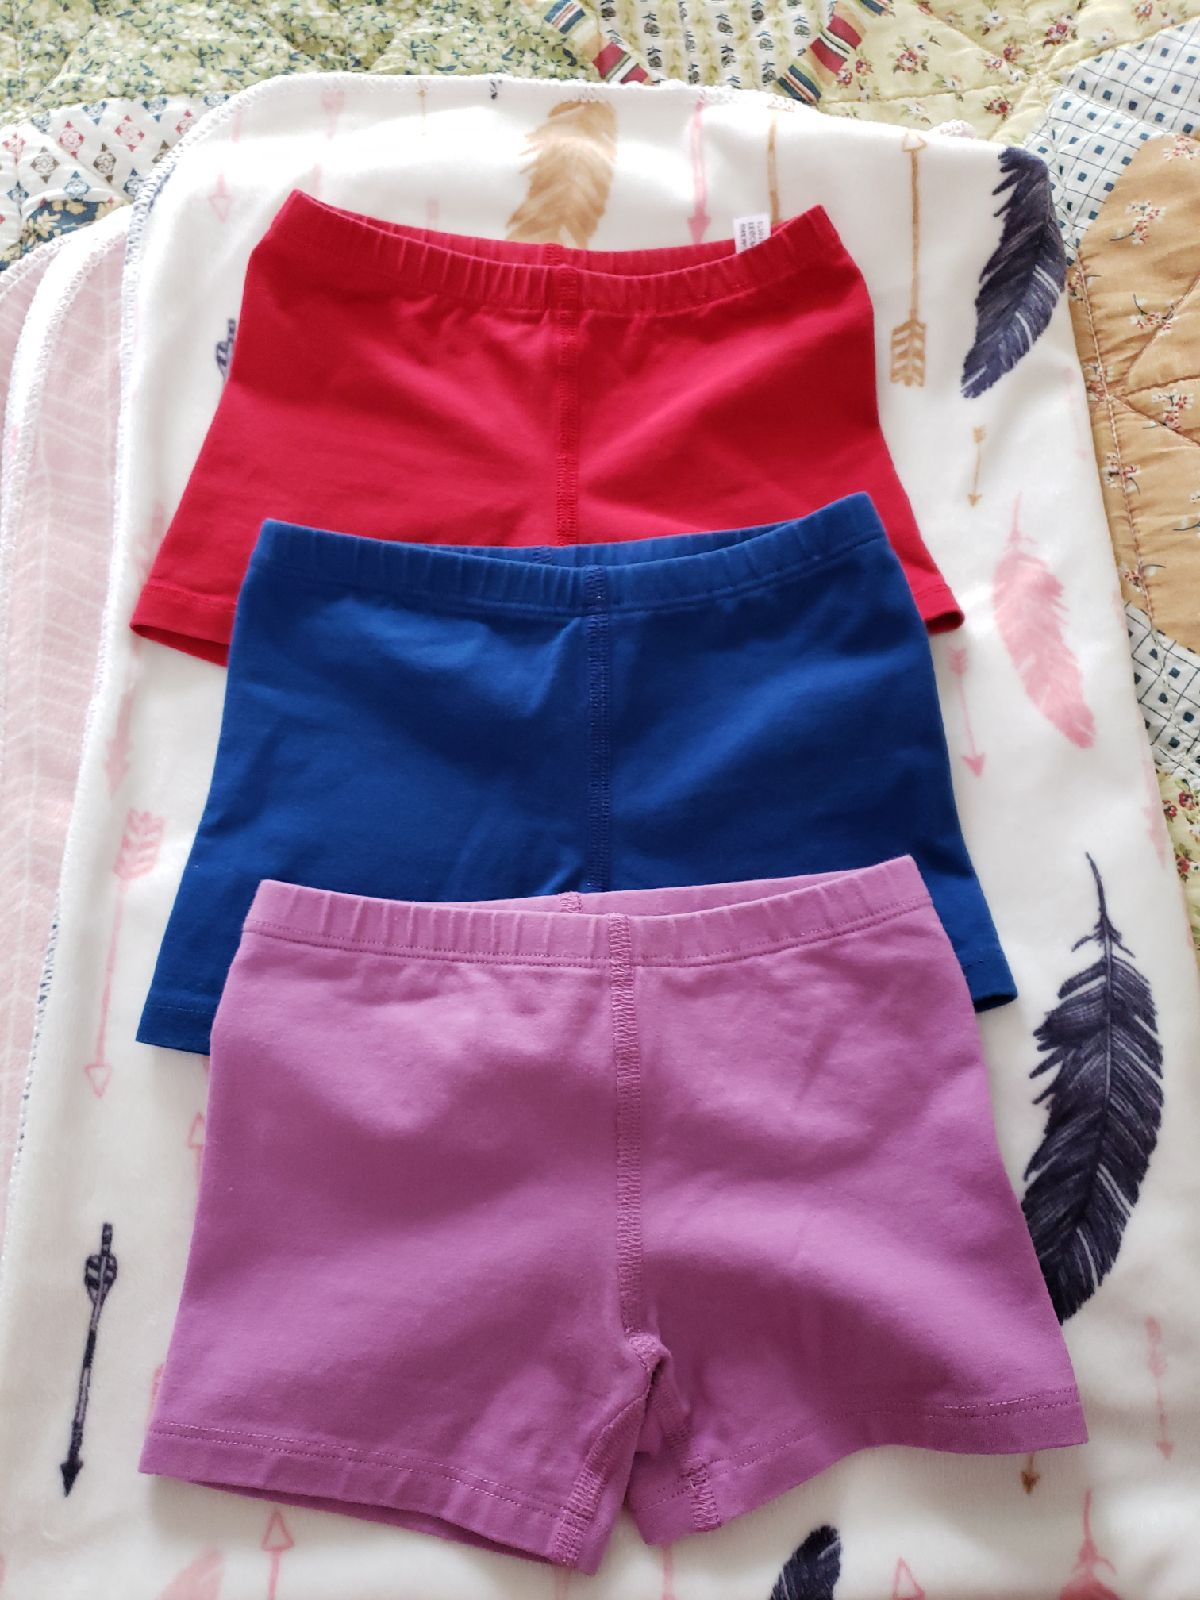 Primary girls shorts (now set of 3)